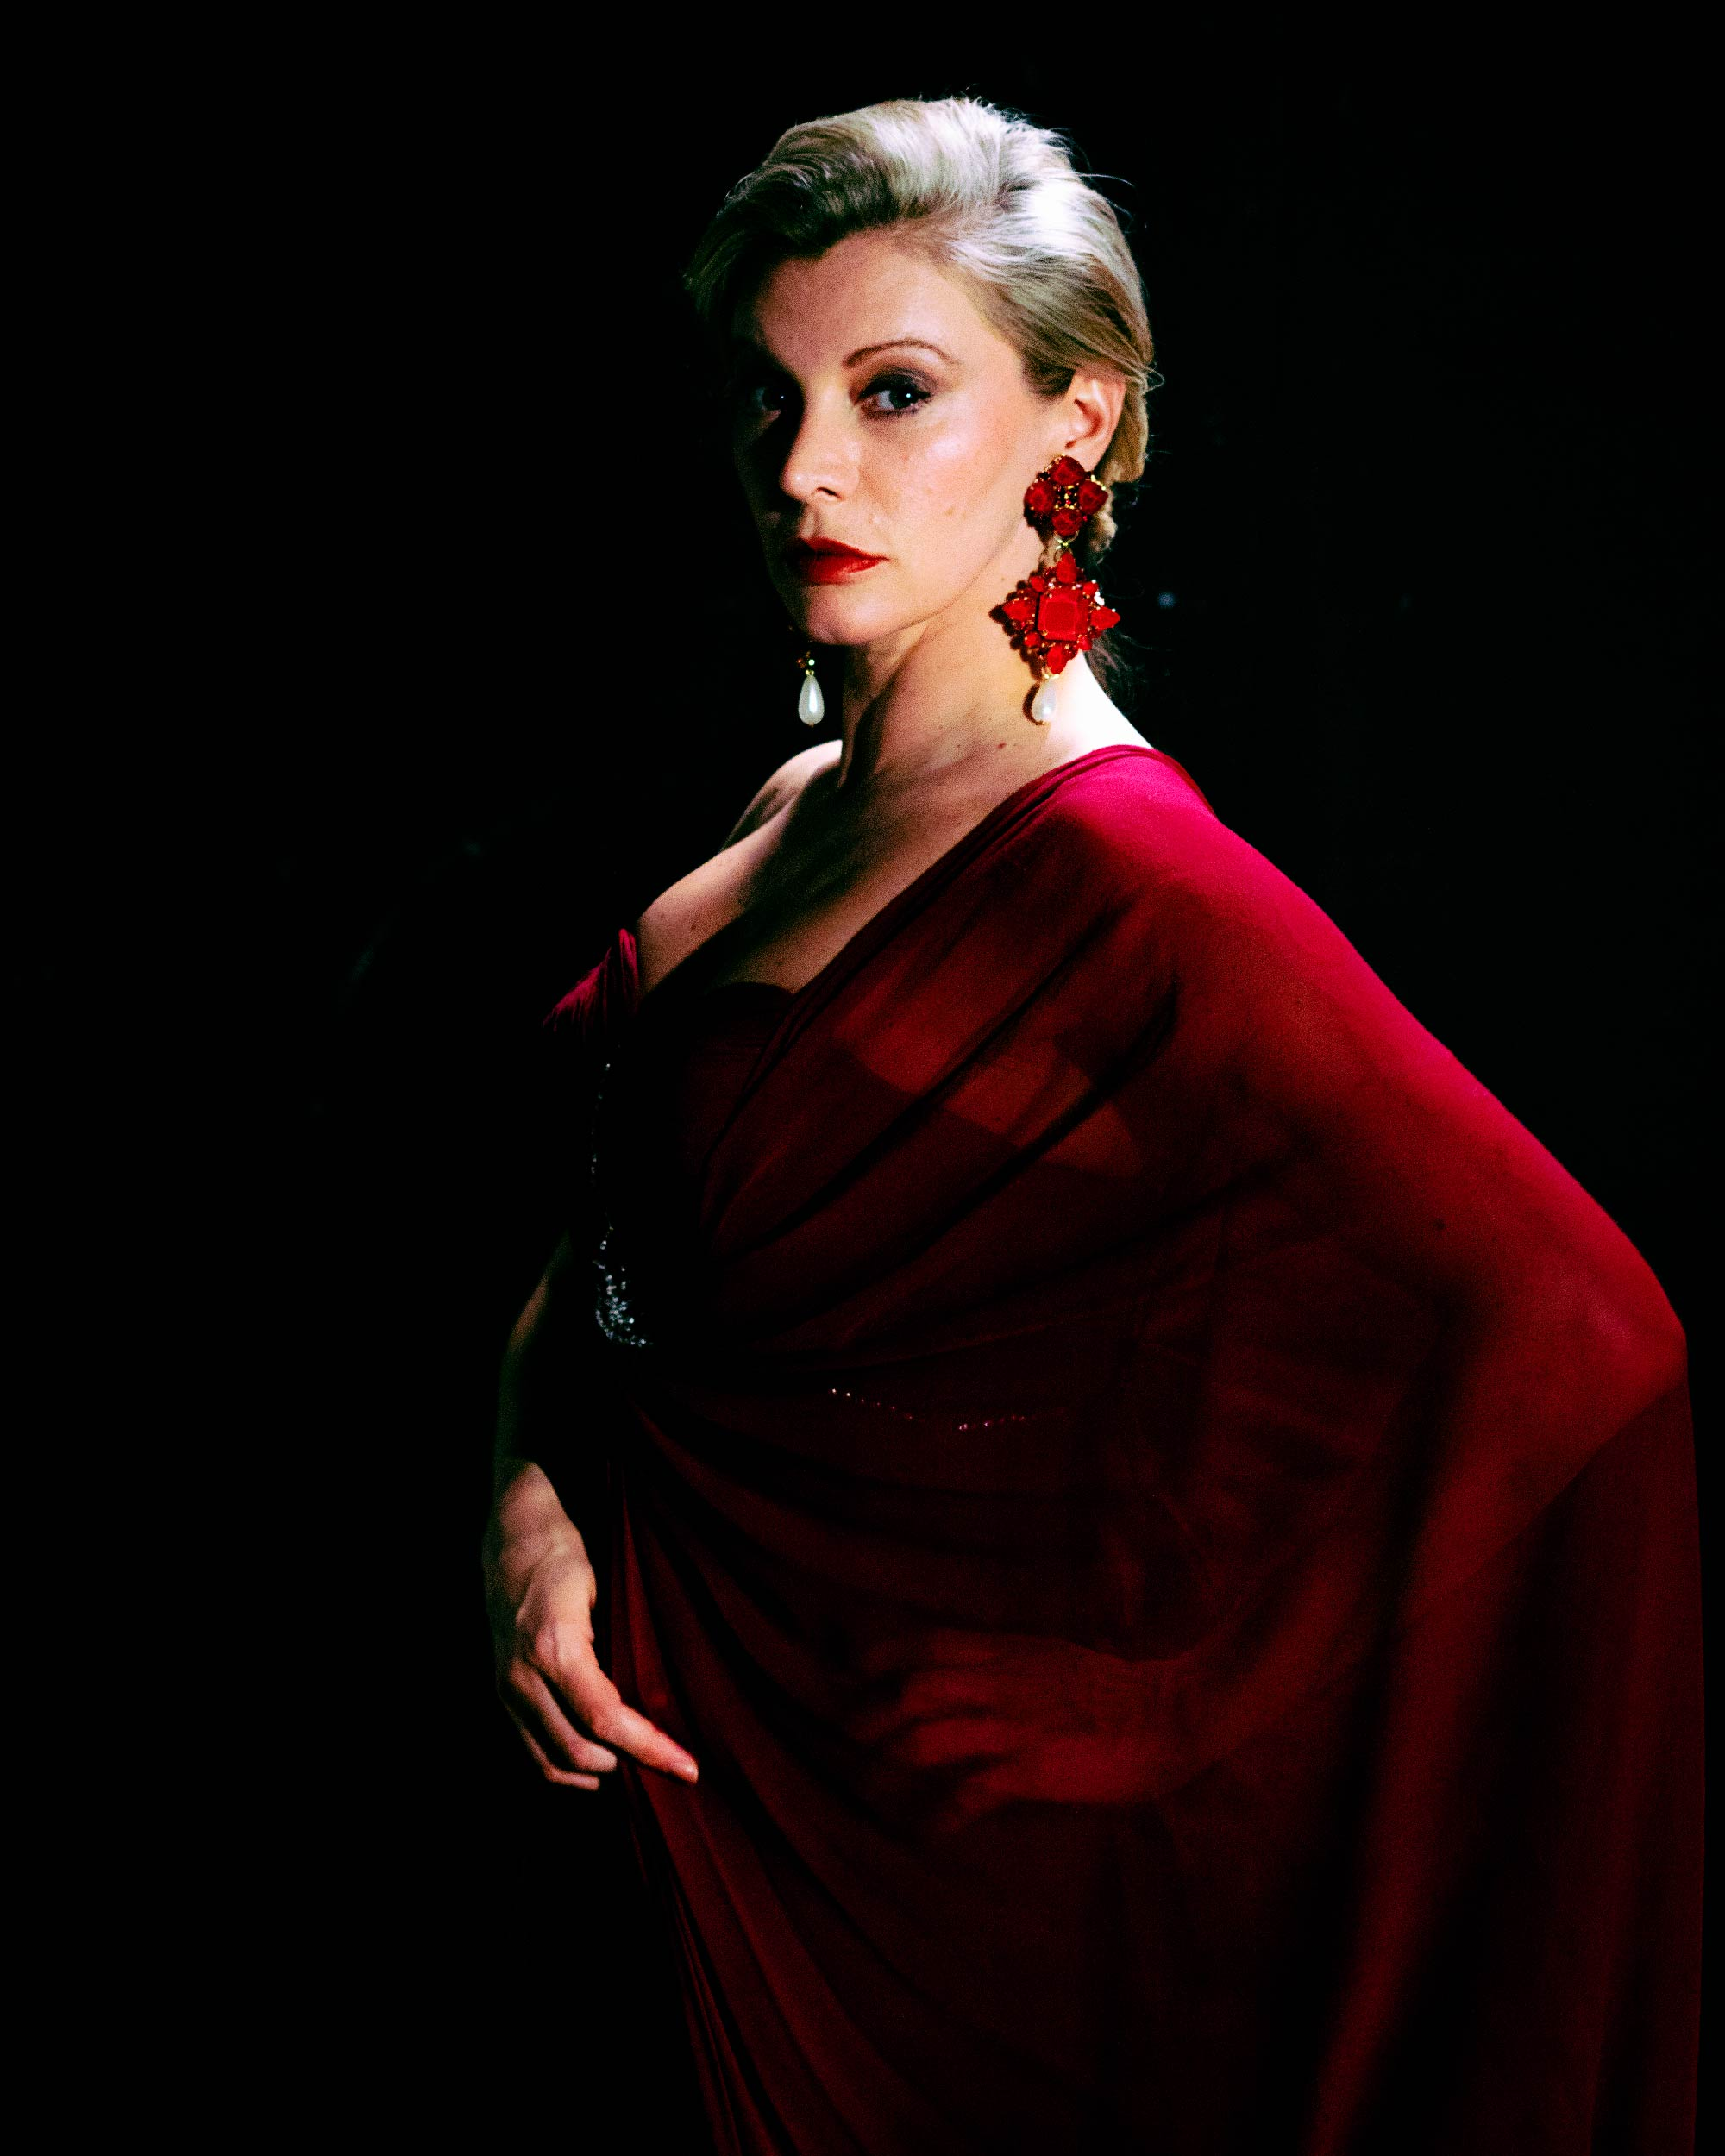 Makeup for London fashion shoot. Woman in red dress and shawl poses for photo (3).